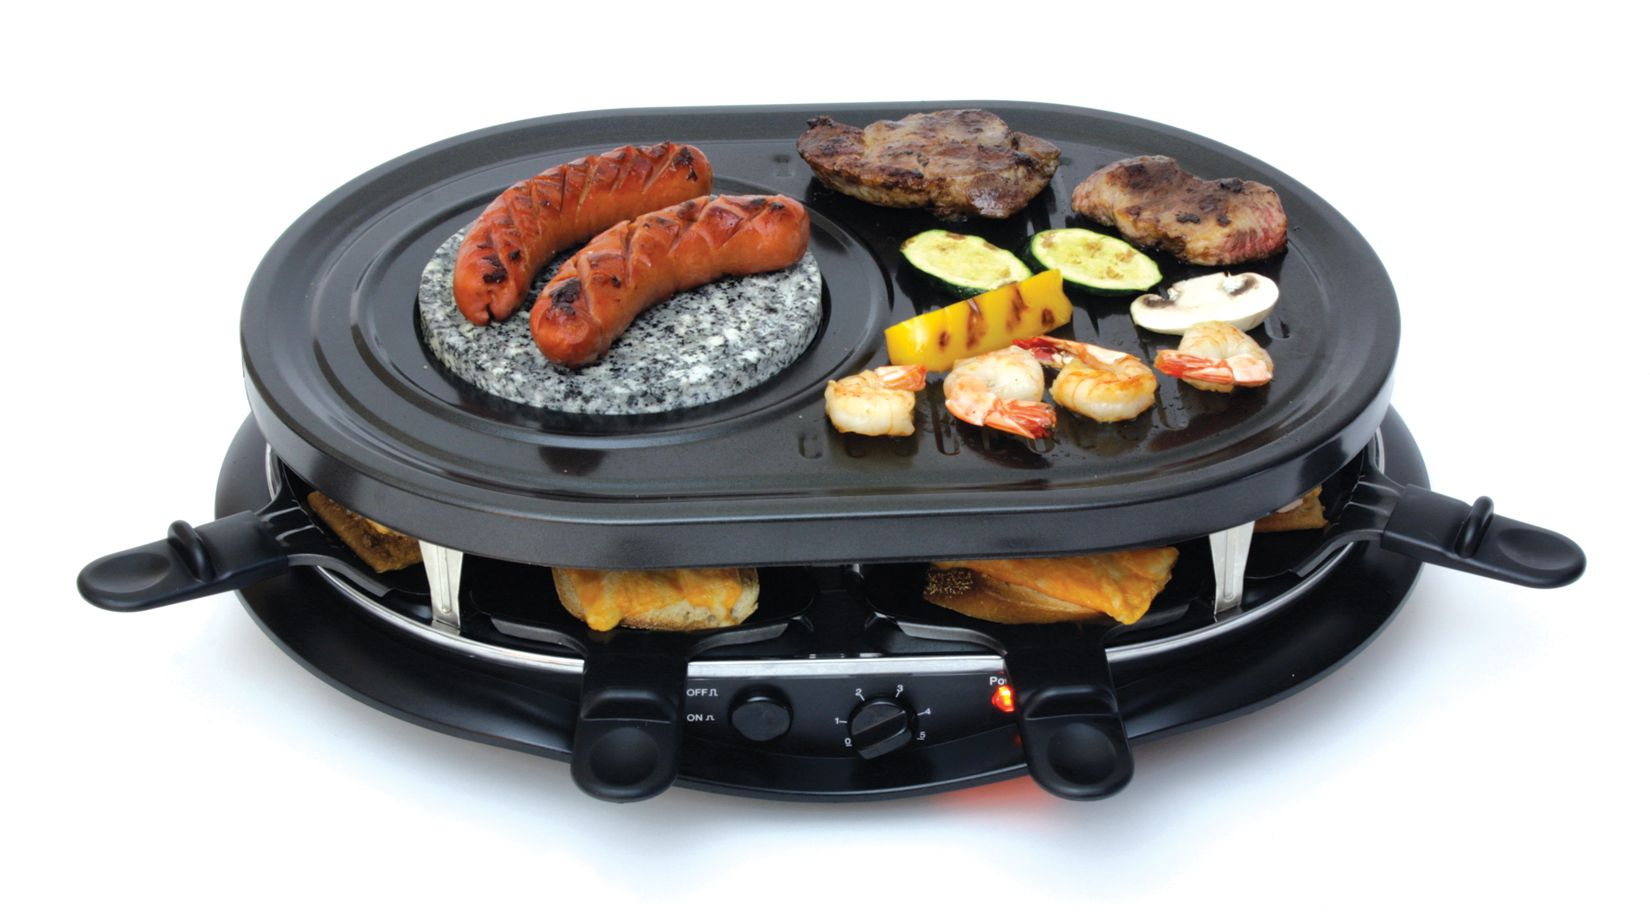 Total Chef 8 Person Party Grill Raclette with Fondue